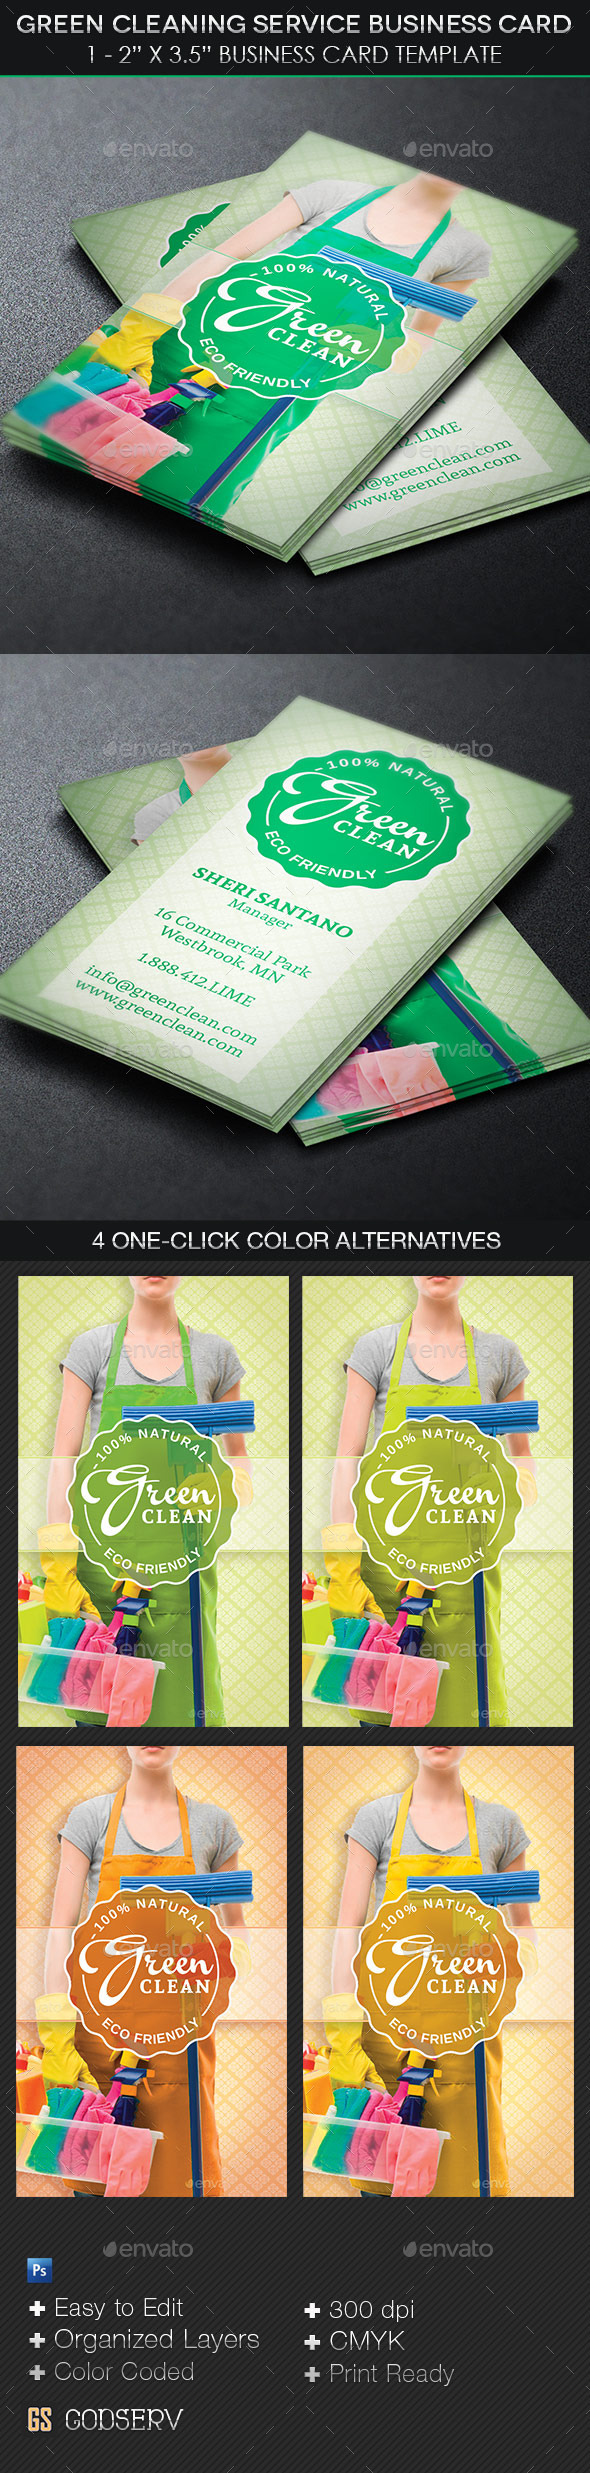 Green Cleaning Service Business Card Template by Godserv | GraphicRiver